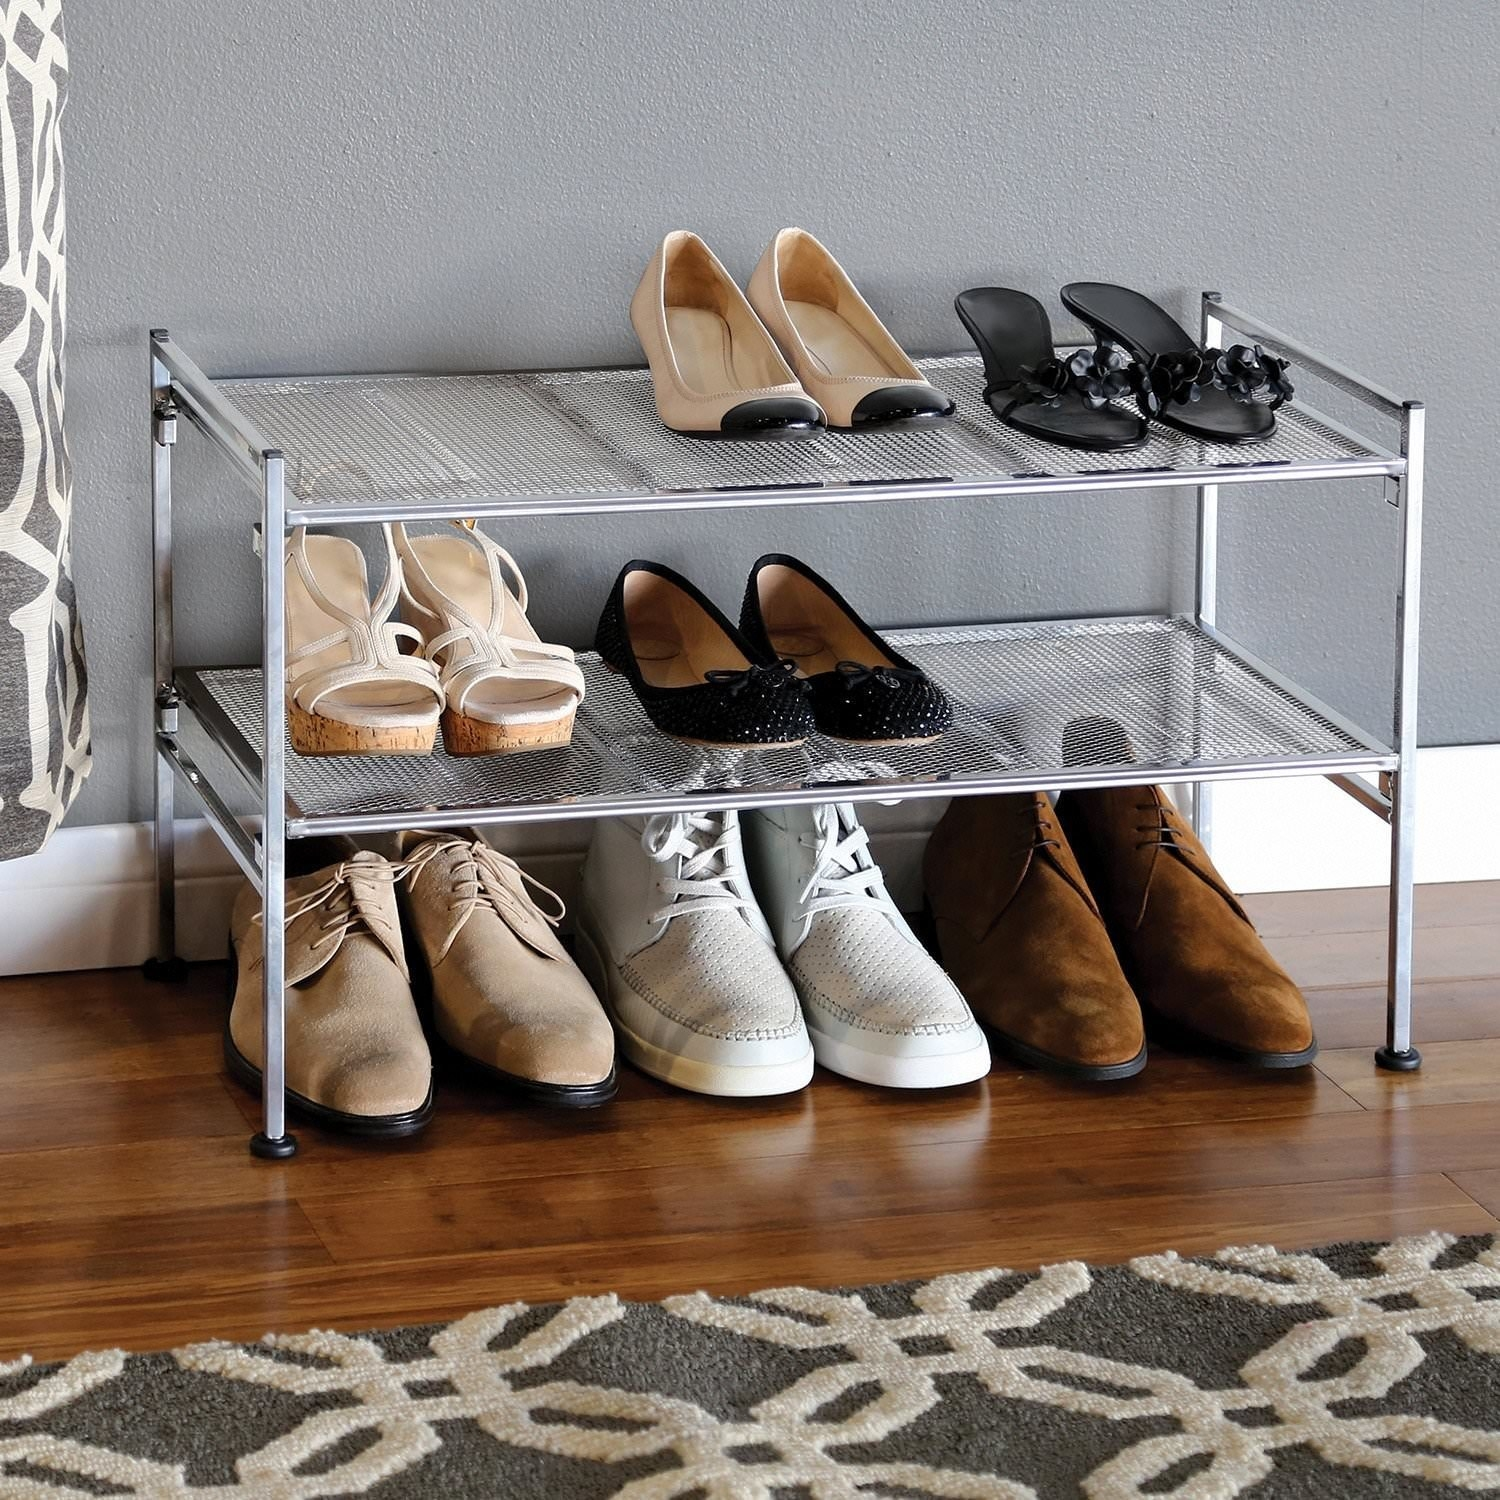 two-tiered iron shoe rack against a wall with shoes under and on the shelves